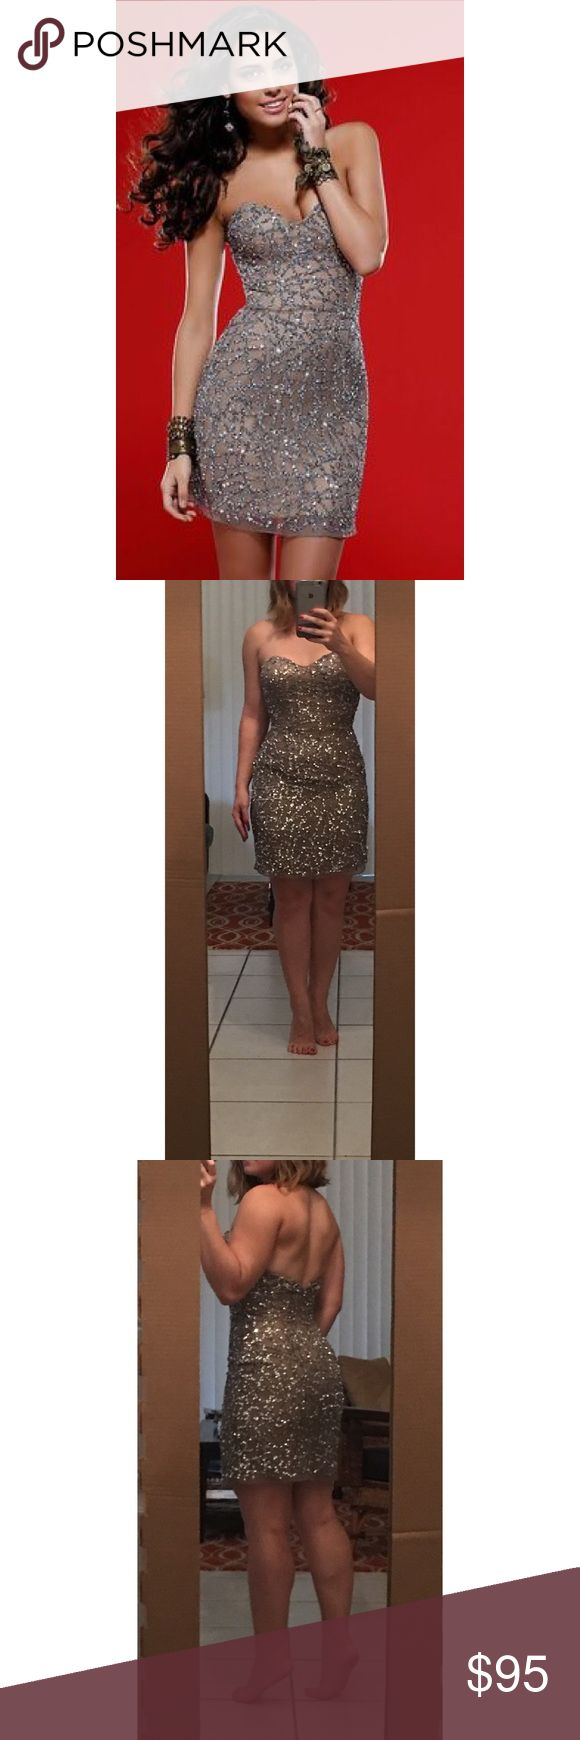 Scala Dress 47624 Full nude body, silver sequin patterned detail, strapless, fitted at waist, falls slightly loose over hips, worn twice (both times for 2-3 hours), not in original plastic slip cover Scala Dresses Strapless